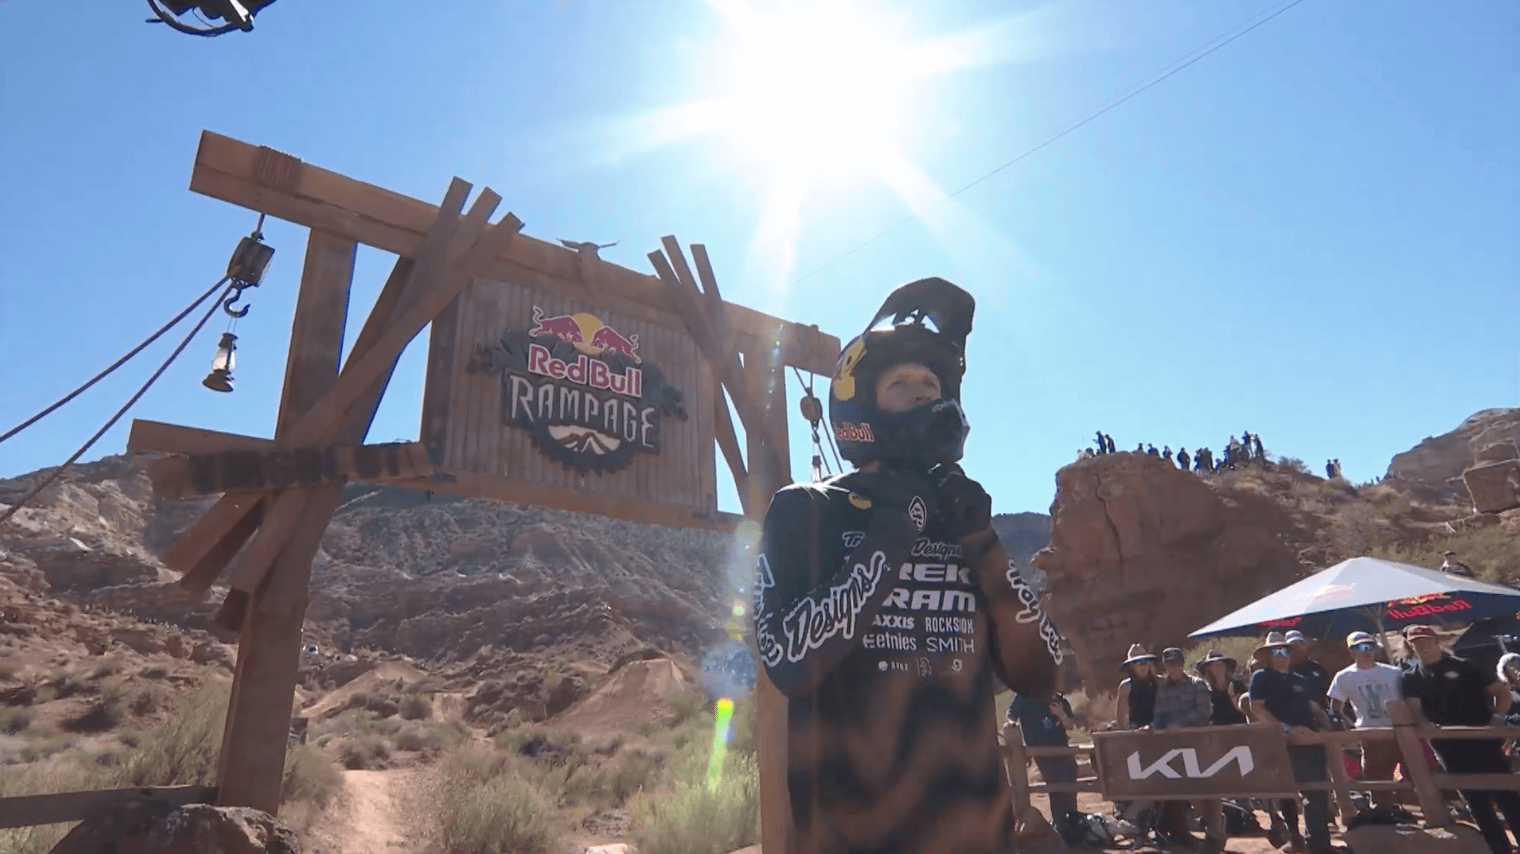 red bull rampage,